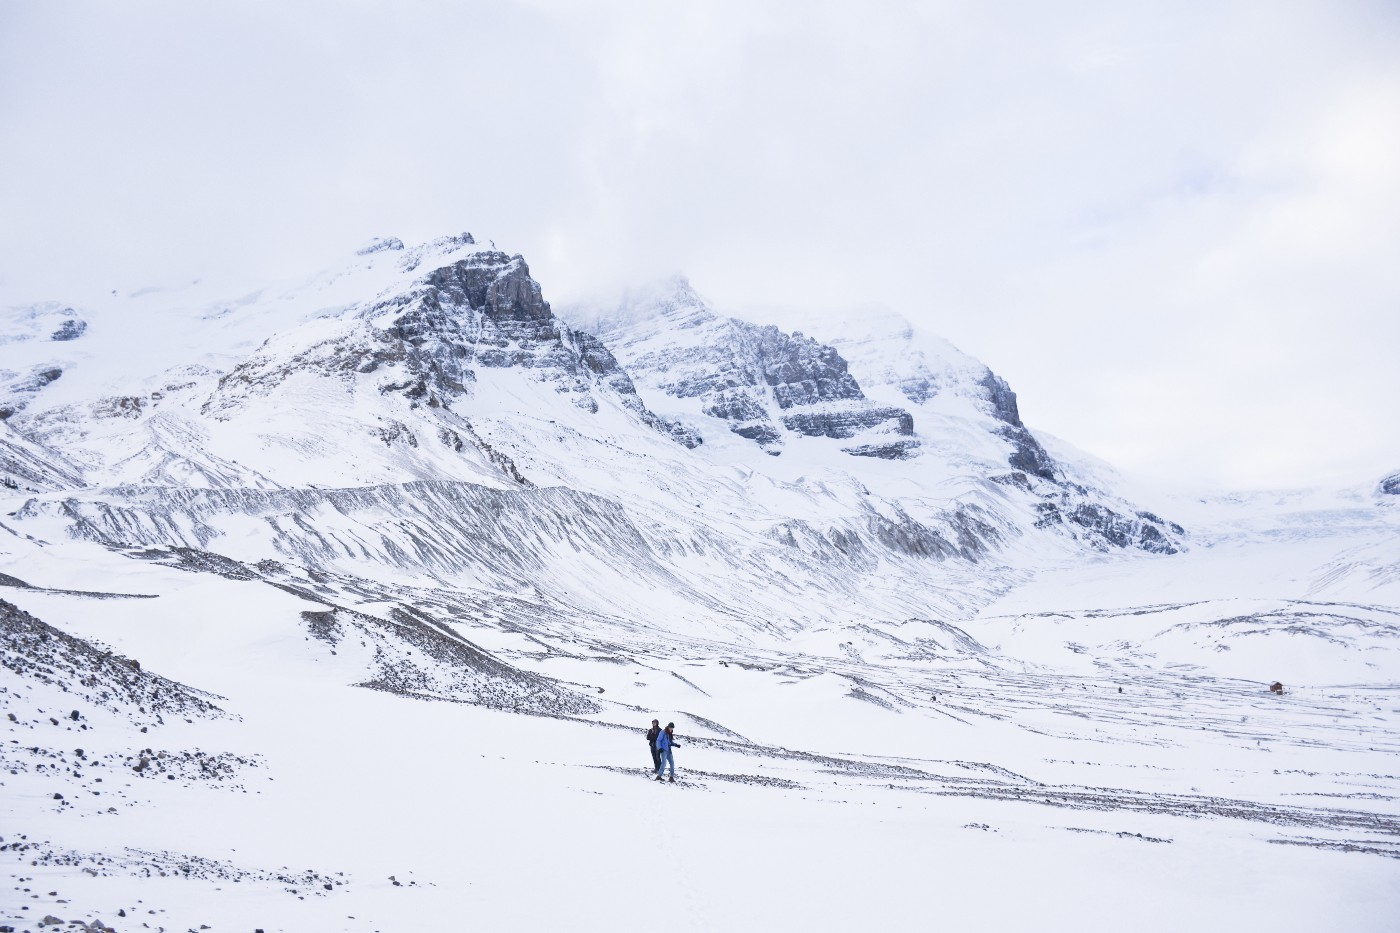 Athabascan glacier in the Columbian Icefields two people walking on it